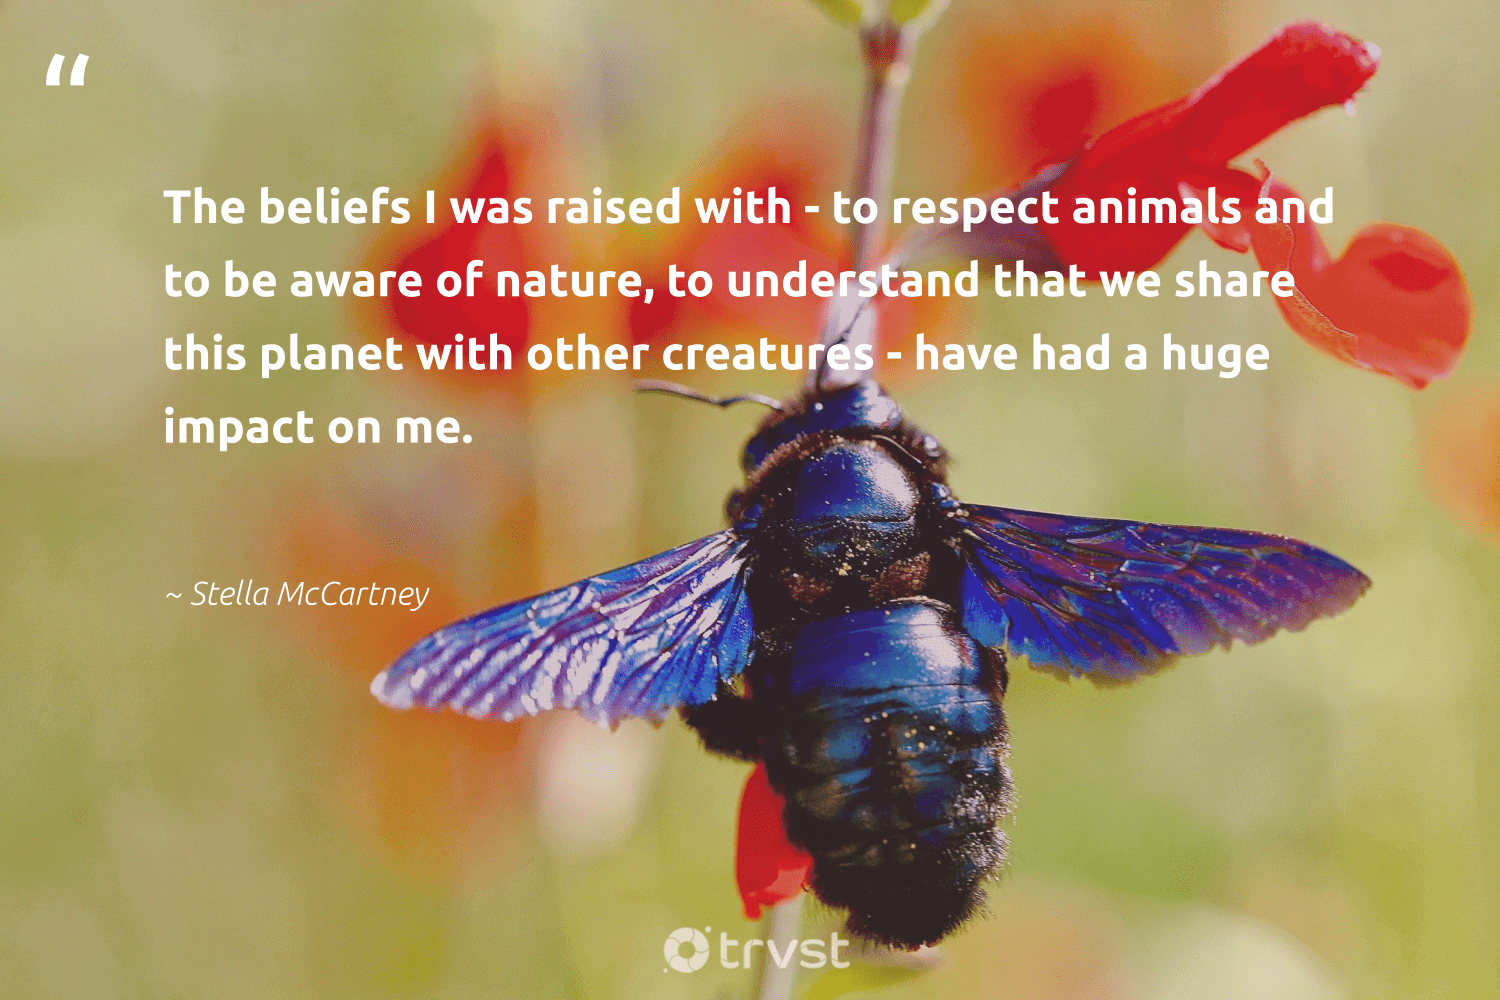 """""""The beliefs I was raised with - to respect animals and to be aware of nature, to understand that we share this planet with other creatures - have had a huge impact on me.""""  - Stella McCartney #trvst #quotes #impact #nature #planet #animals #mothernature #environment #science #savetheplanet #beinspired #conservation"""